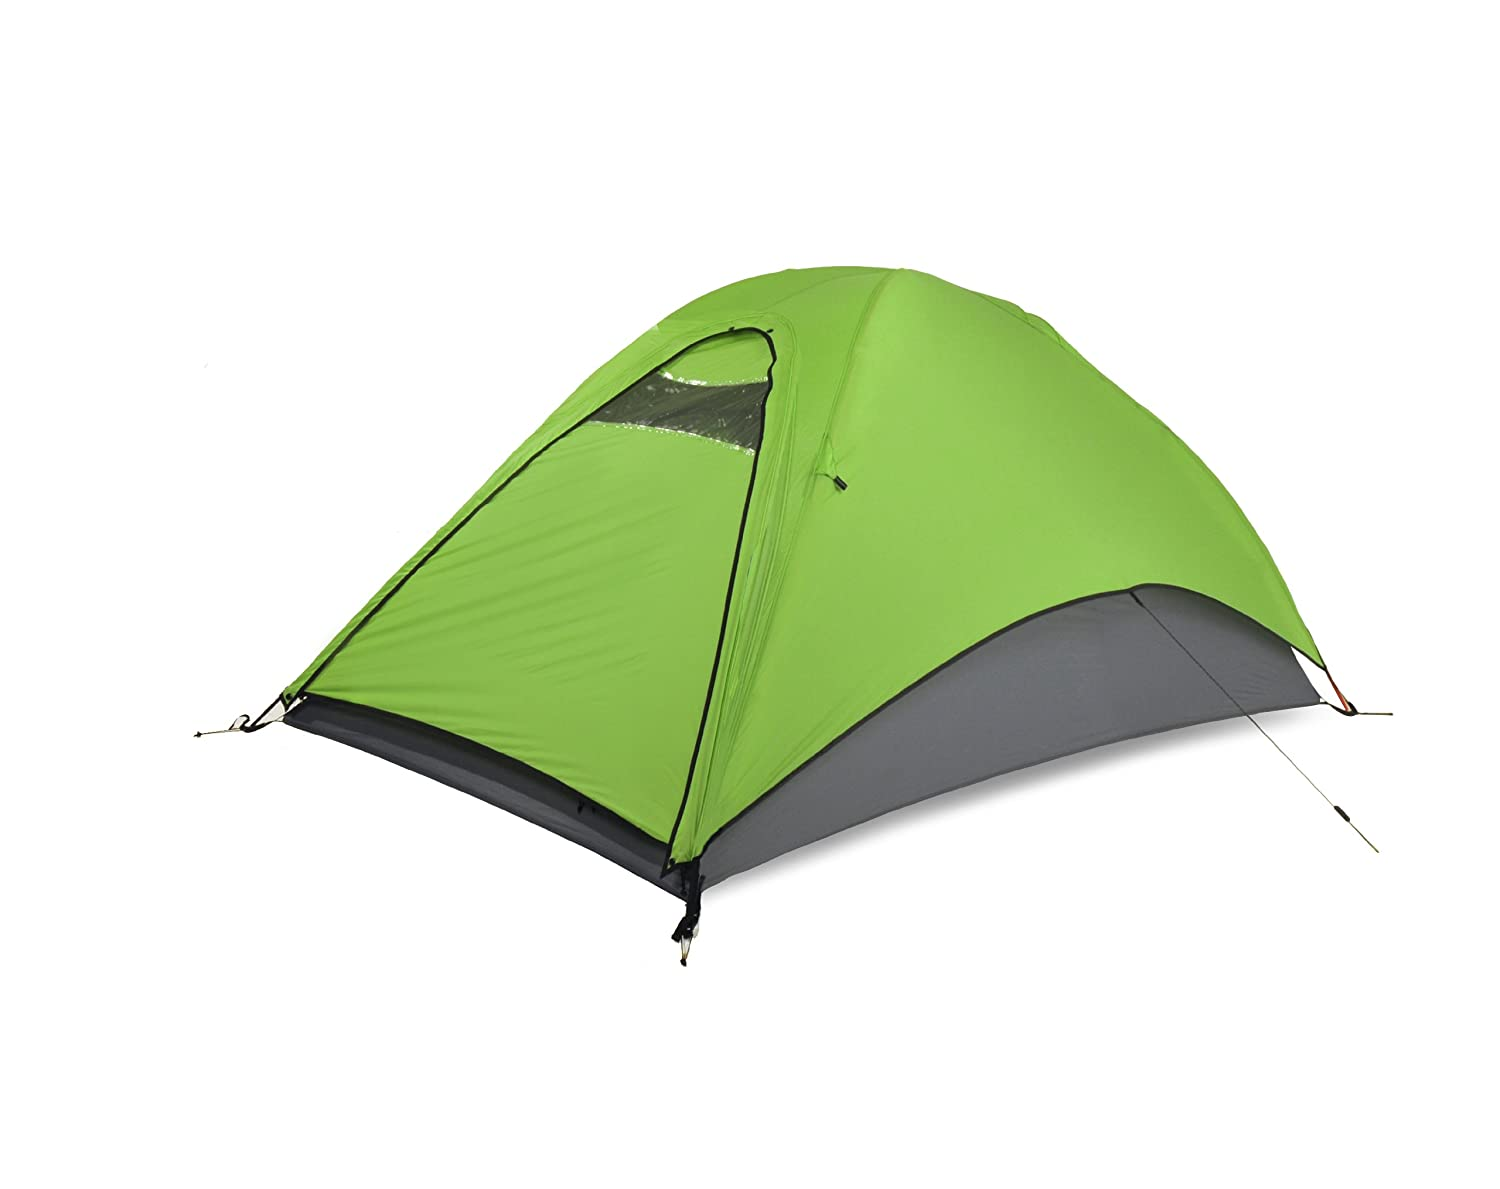 Amazon.com  Nemo Equipment Espri Ultralight Backpacking Tent  Sports u0026 Outdoors  sc 1 st  Amazon.com : nemo losi 2p tent - memphite.com